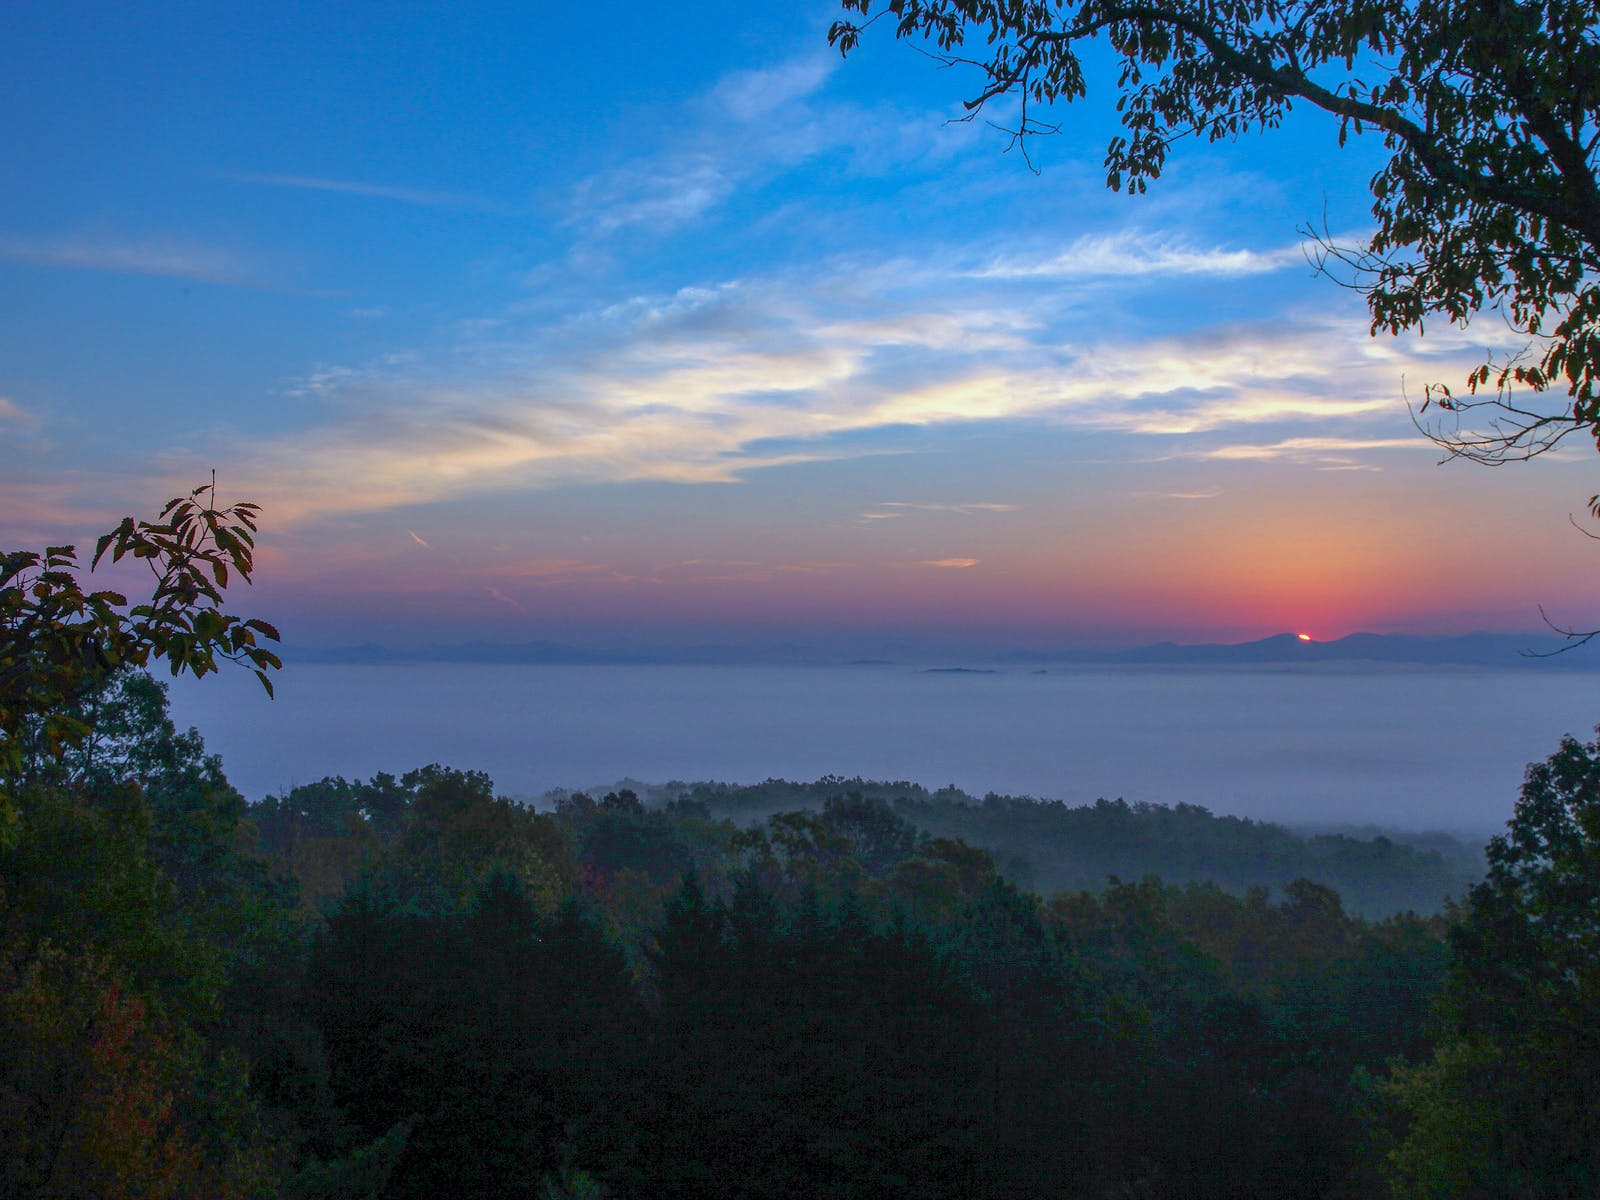 Fading sunset in the blue ridge mountains